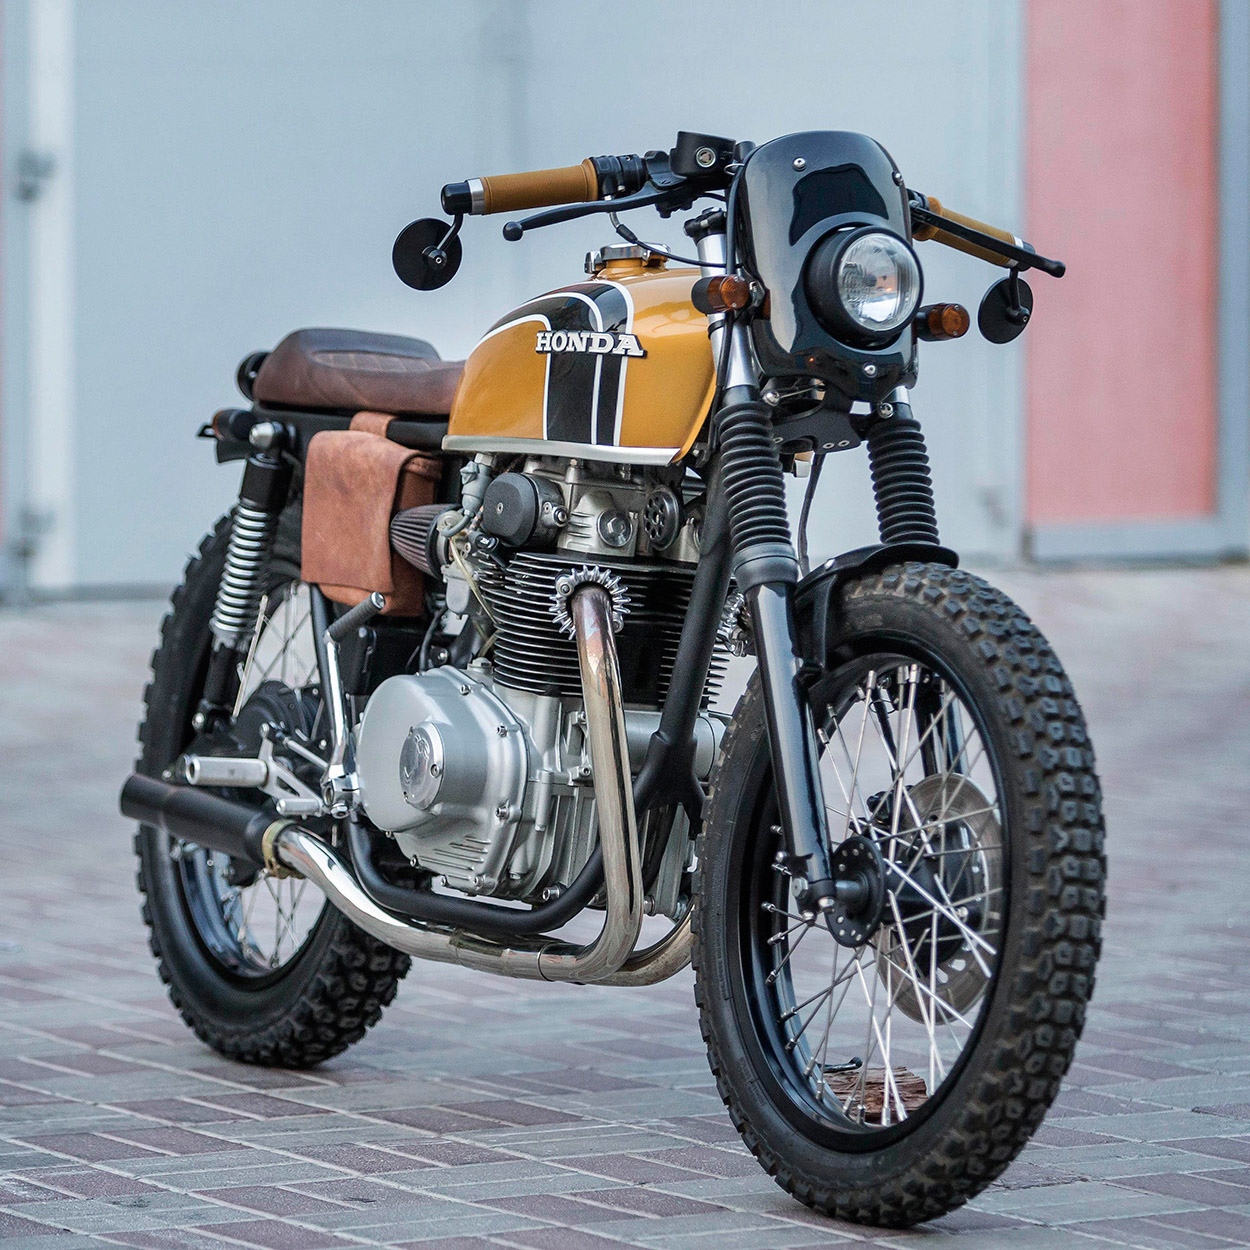 The CB350 comes stock with drum brakes, but Antonie upgraded the front end with refurbished parts from another barn find—a GB250.